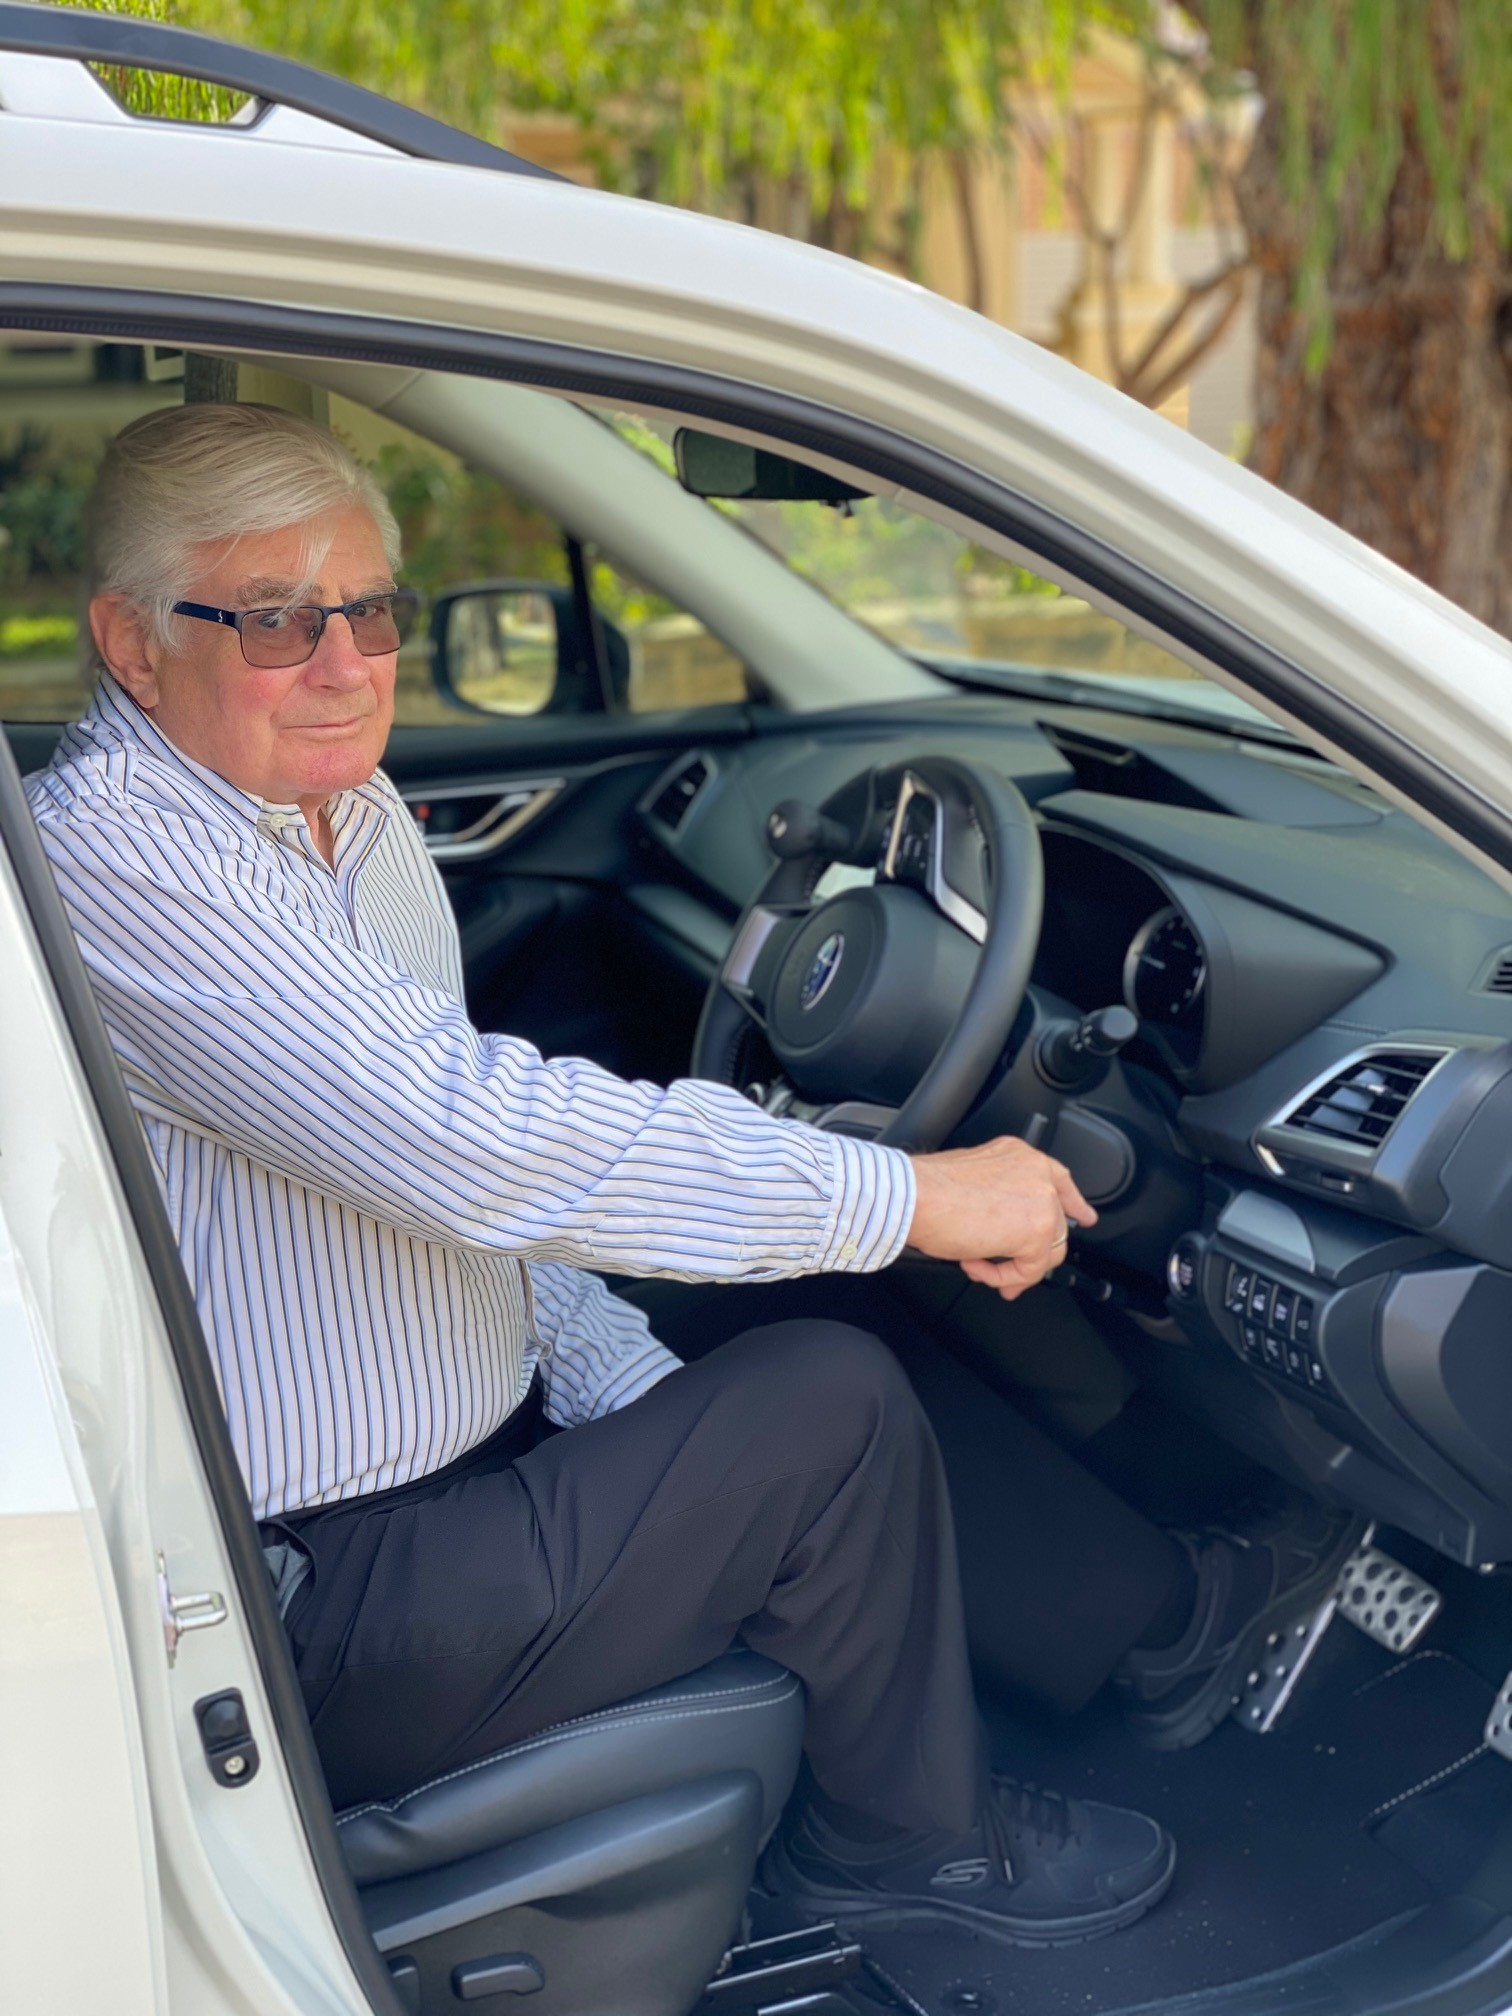 Older male in driver seat of car showing hand controls